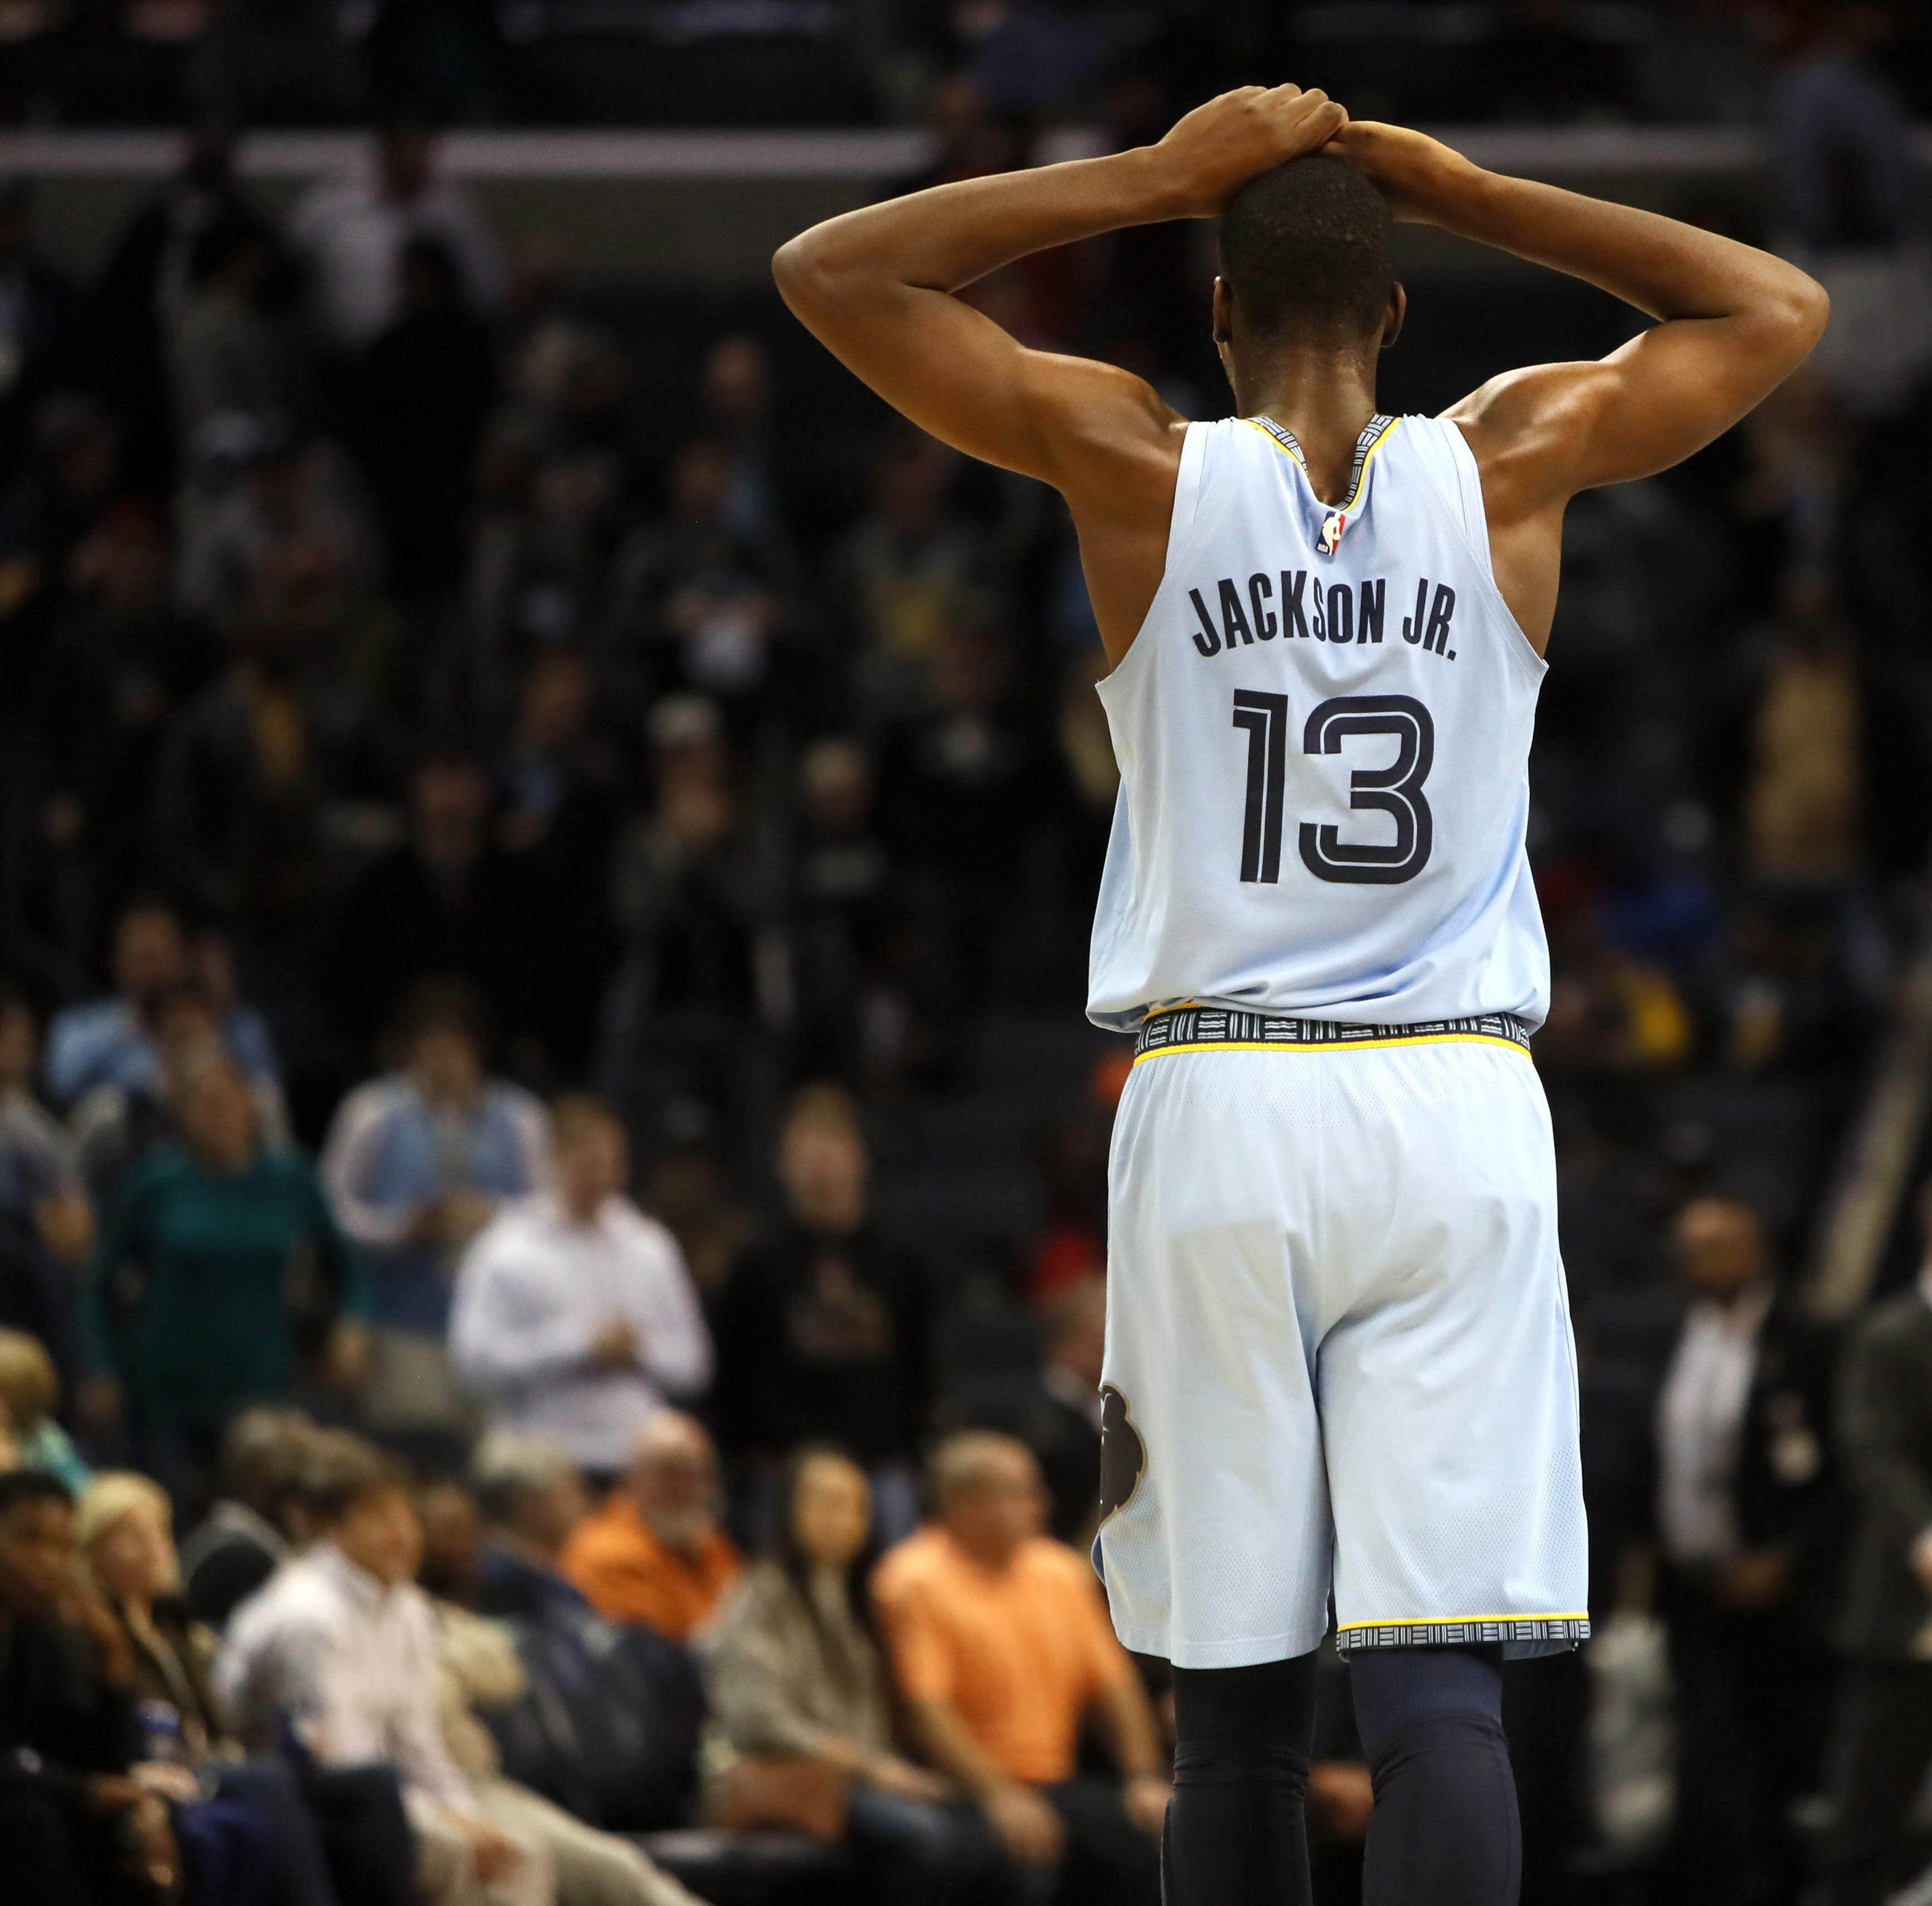 Memphis Grizzlies: Rookie Jaren Jackson Jr. sidelined indefinitely with deep quad bruise